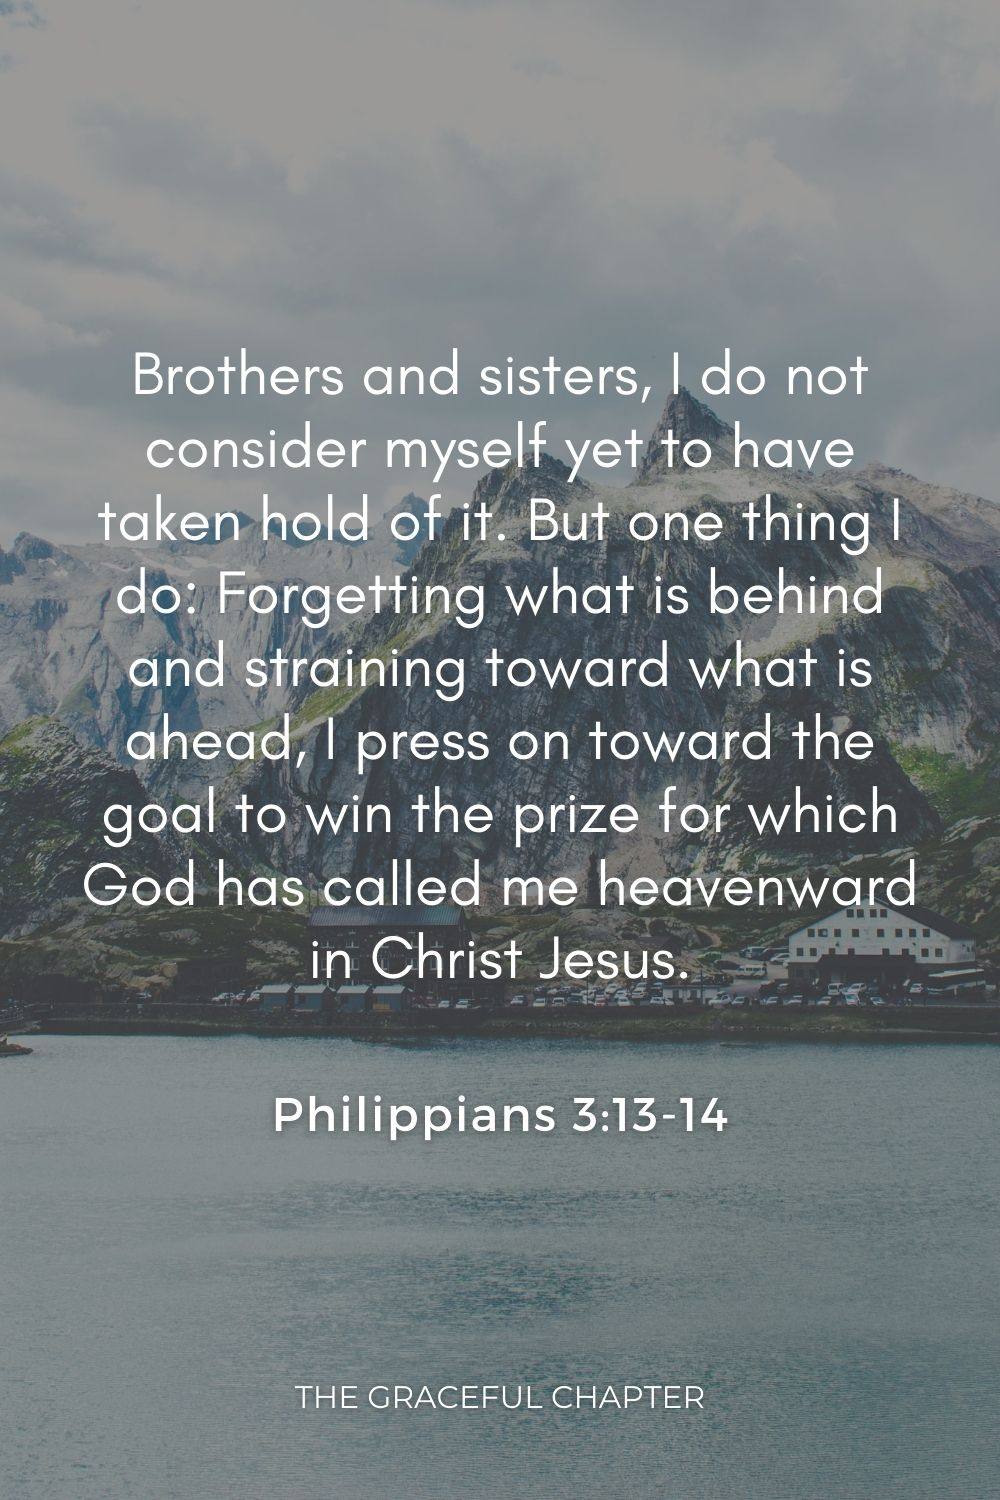 Brothers and sisters, I do not consider myself yet to have taken hold of it. But one thing I do: Forgetting what is behind and straining toward what is ahead, I press on toward the goal to win the prize for which God has called me heavenward in Christ Jesus. Philippians 3:13-14